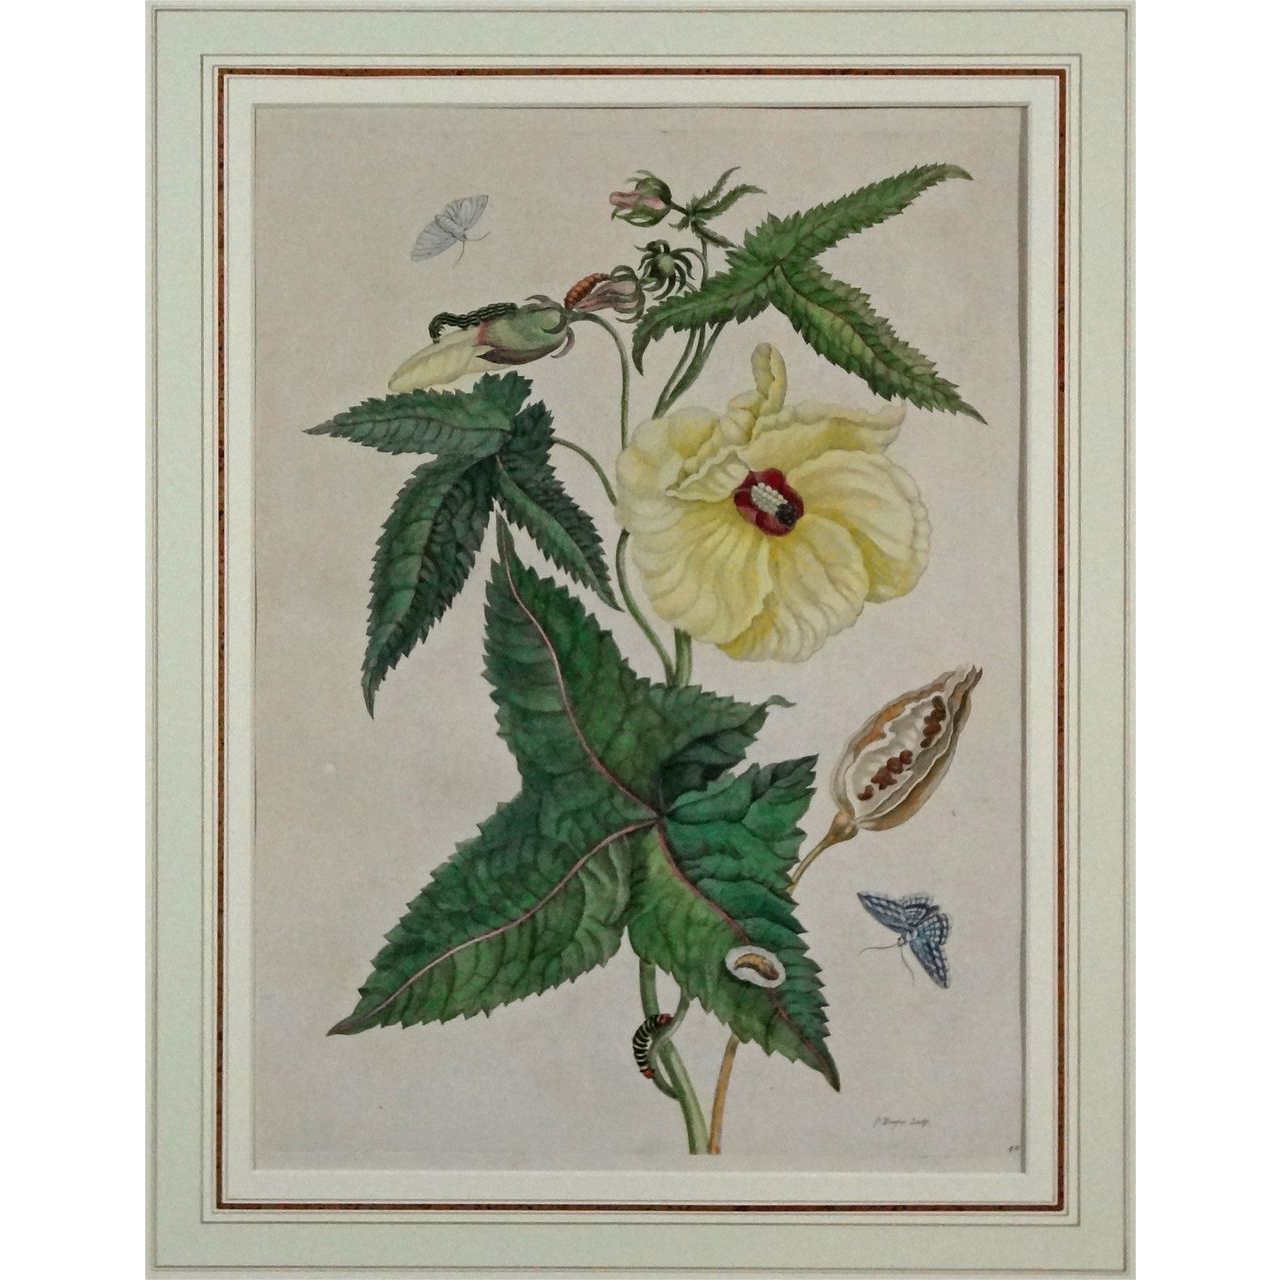 Metamorphosis Hibiscus Botanical Copper Engraving P. Sluyter Plate 42 Color  - The Netherlands